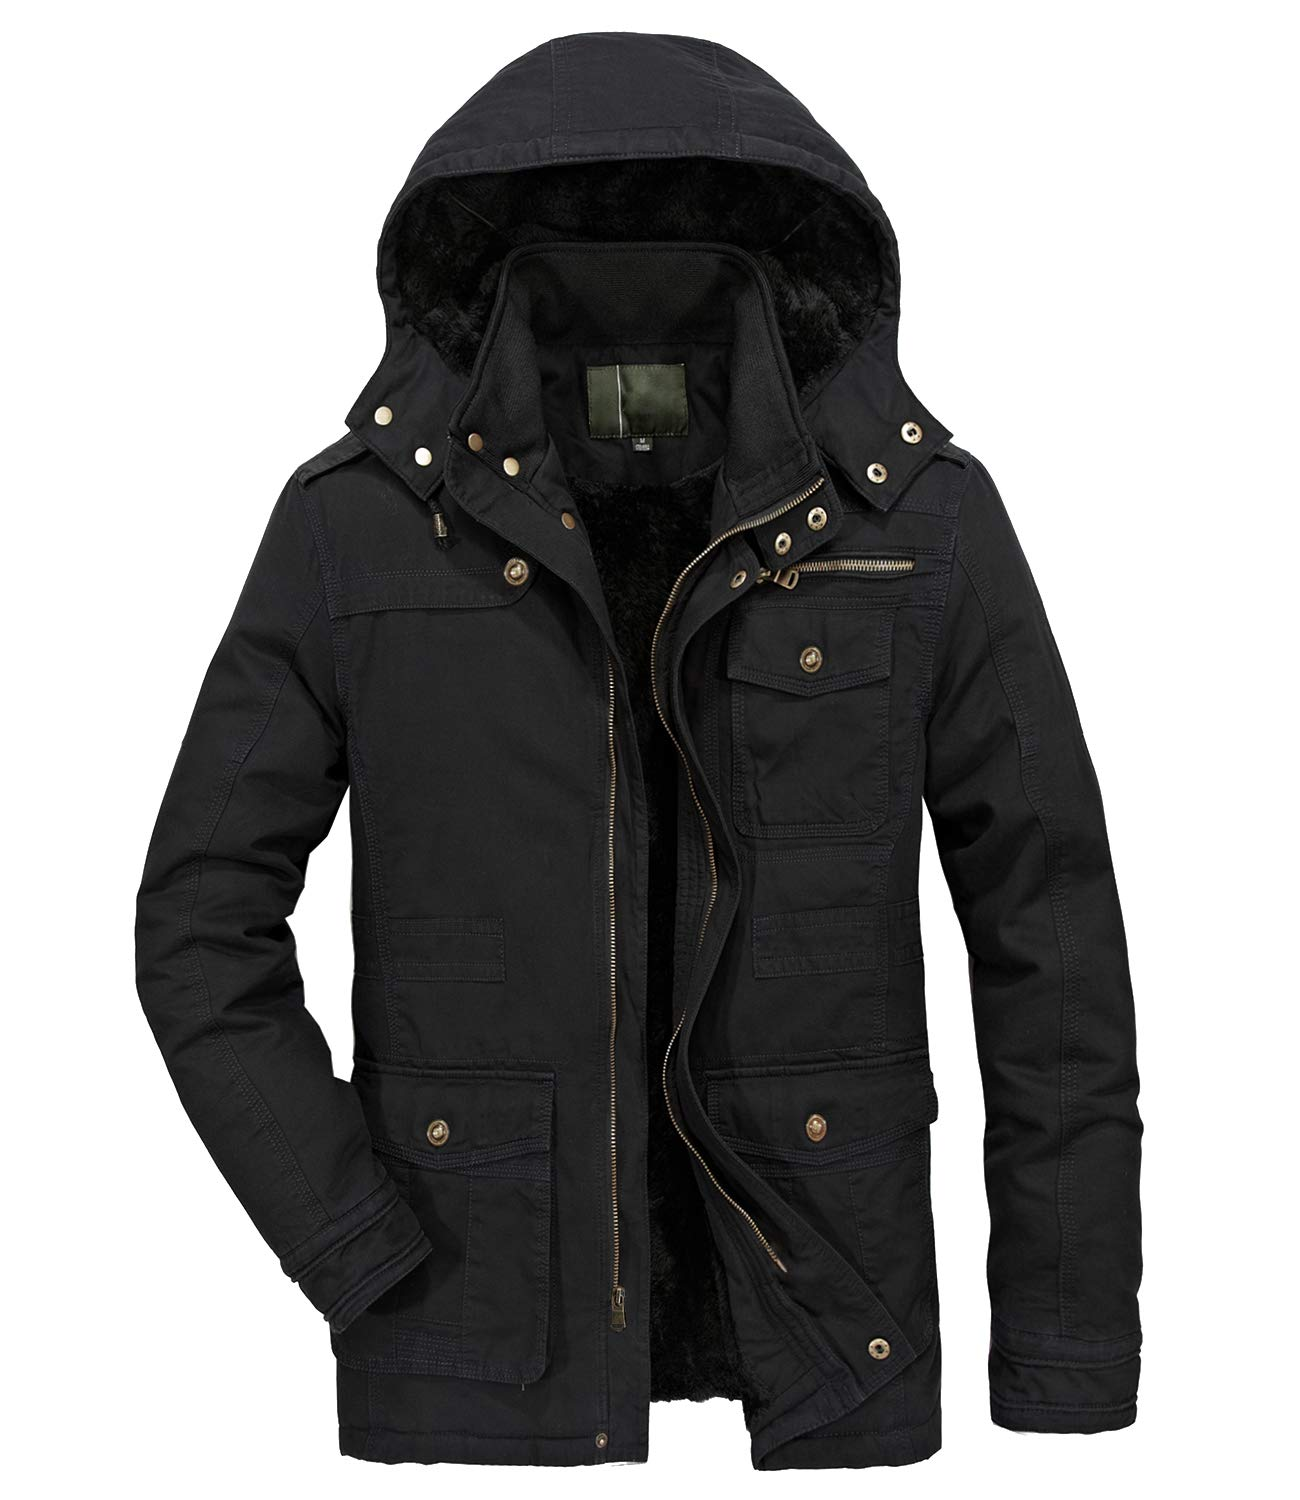 Heihuohua Men's Stand Collar Winter Thicken Military Cotton Jacket